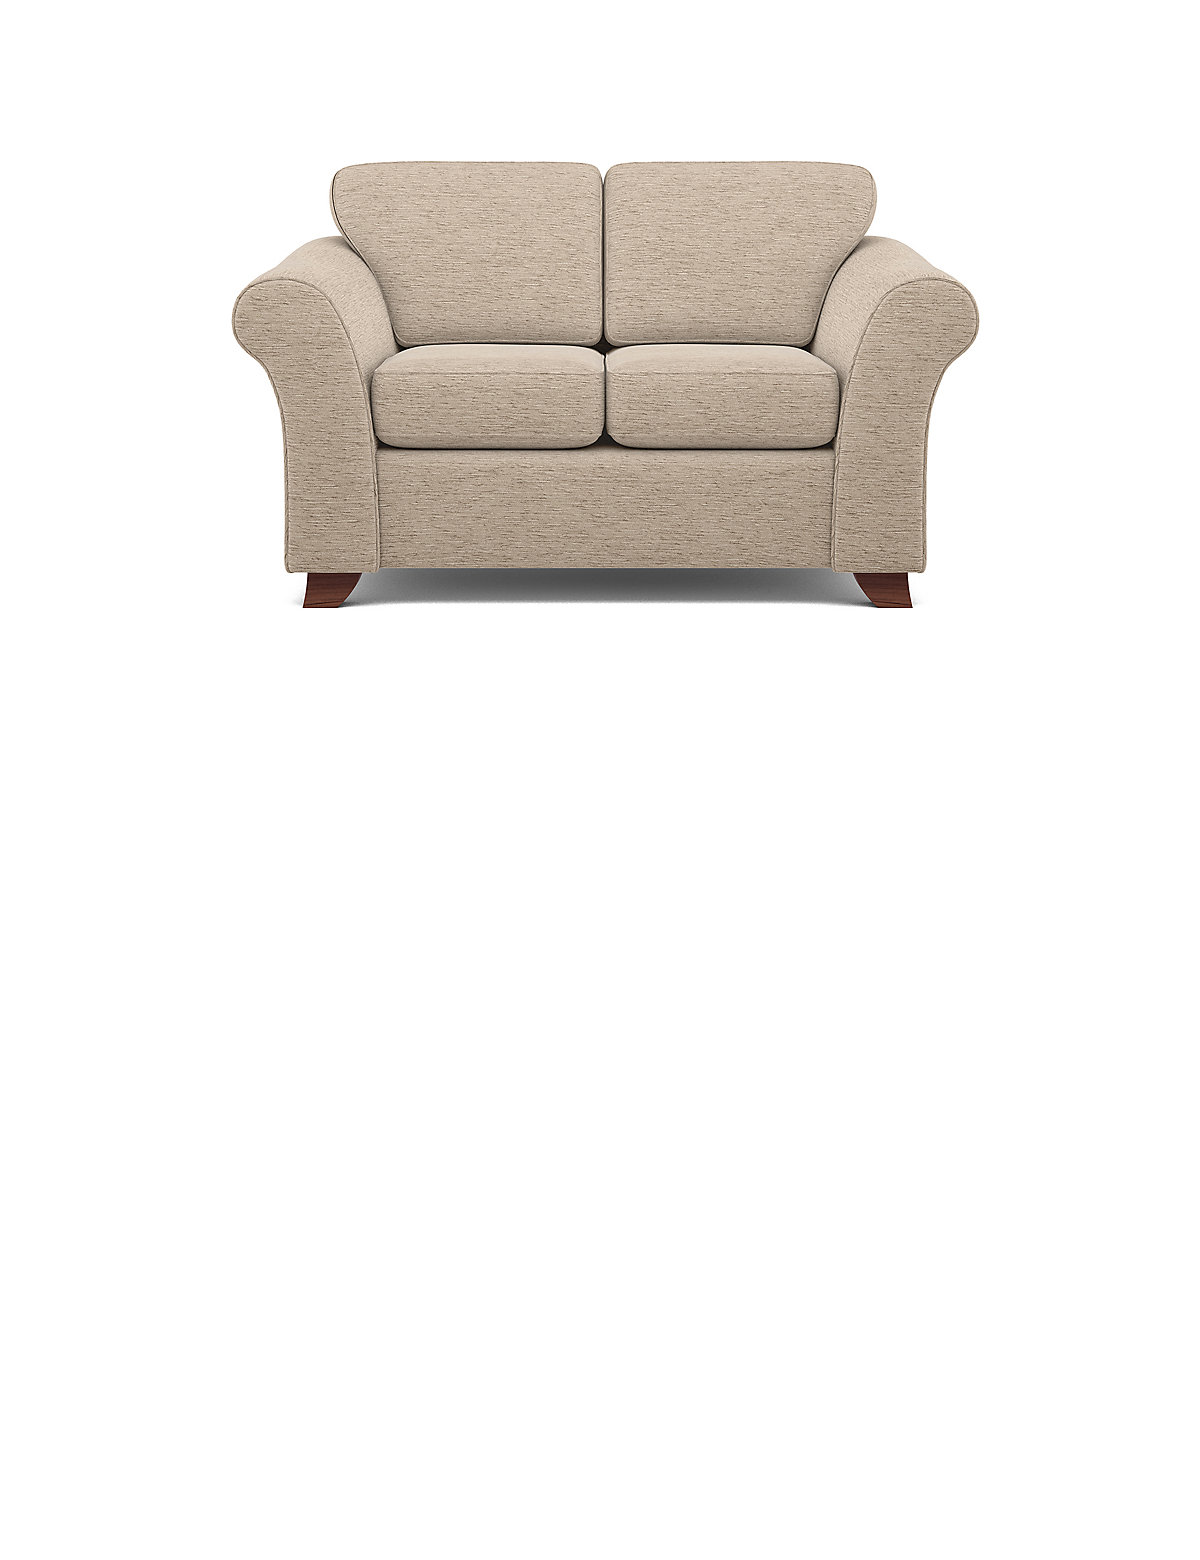 Image of Abbey Compact Sofa